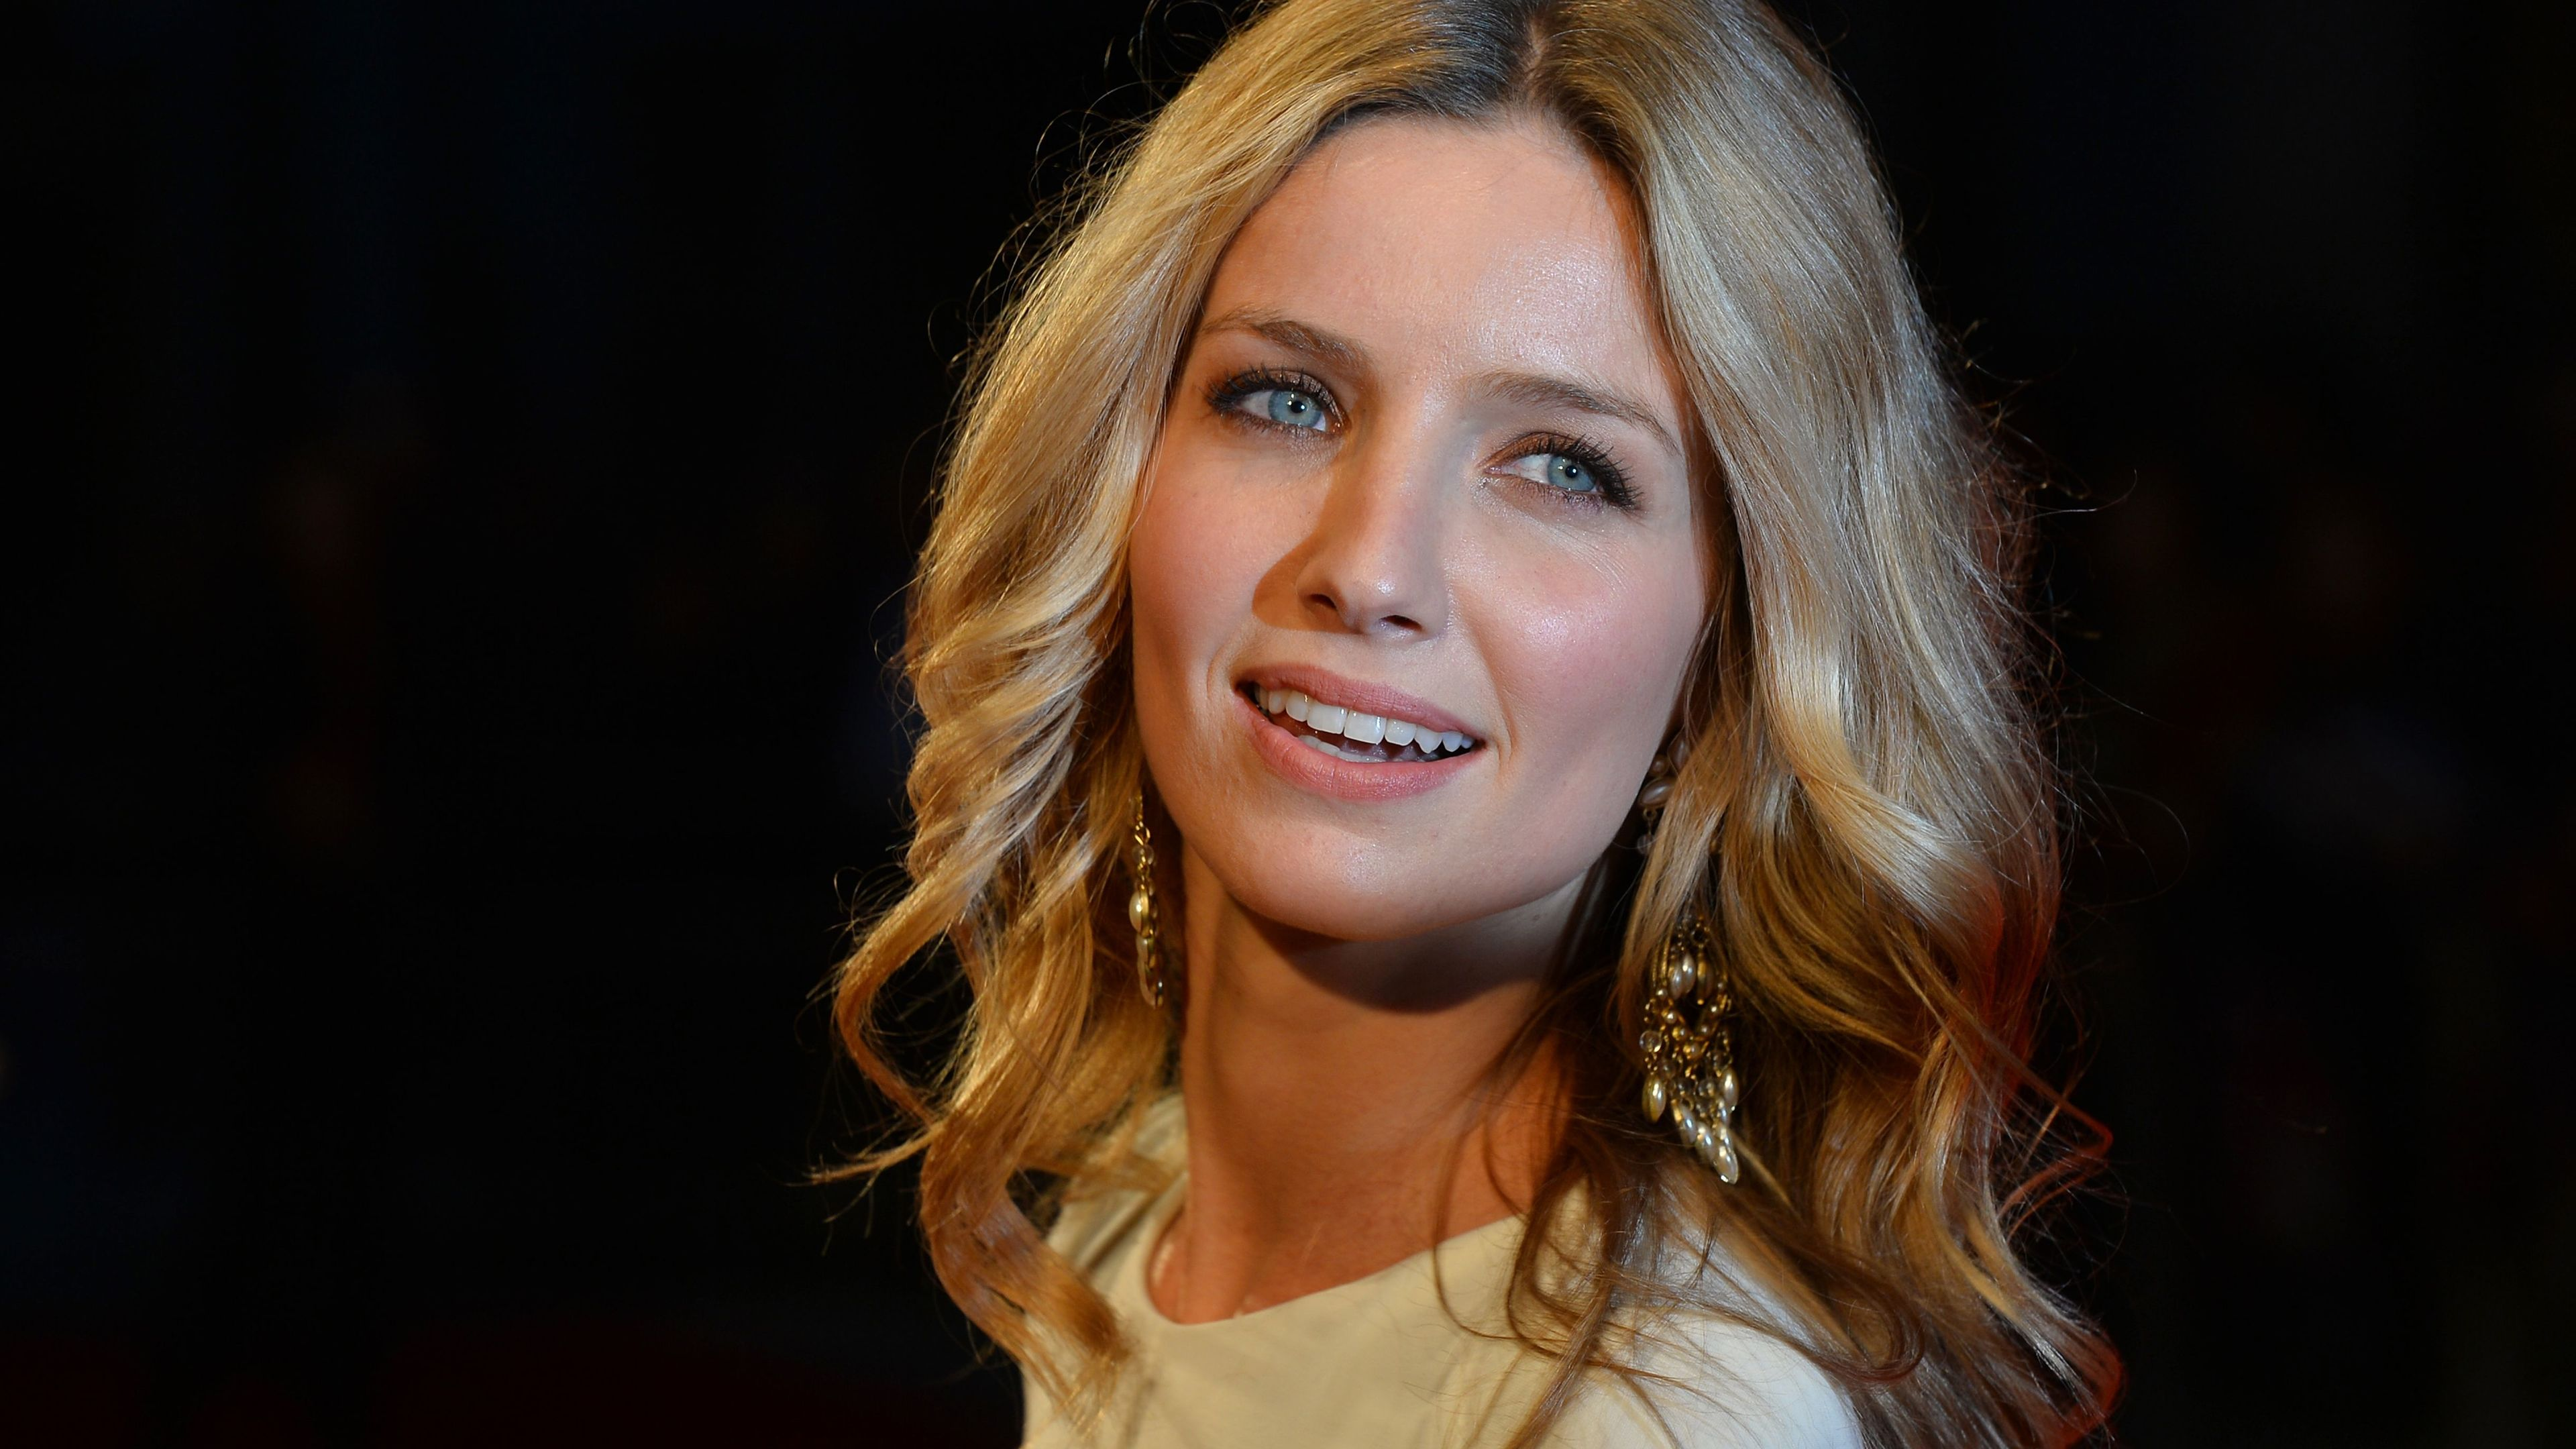 annabelle wallis 4k 1536863053 - Annabelle Wallis 4k - hd-wallpapers, girls wallpapers, celebrities wallpapers, annabelle wallis wallpapers, 4k-wallpapers